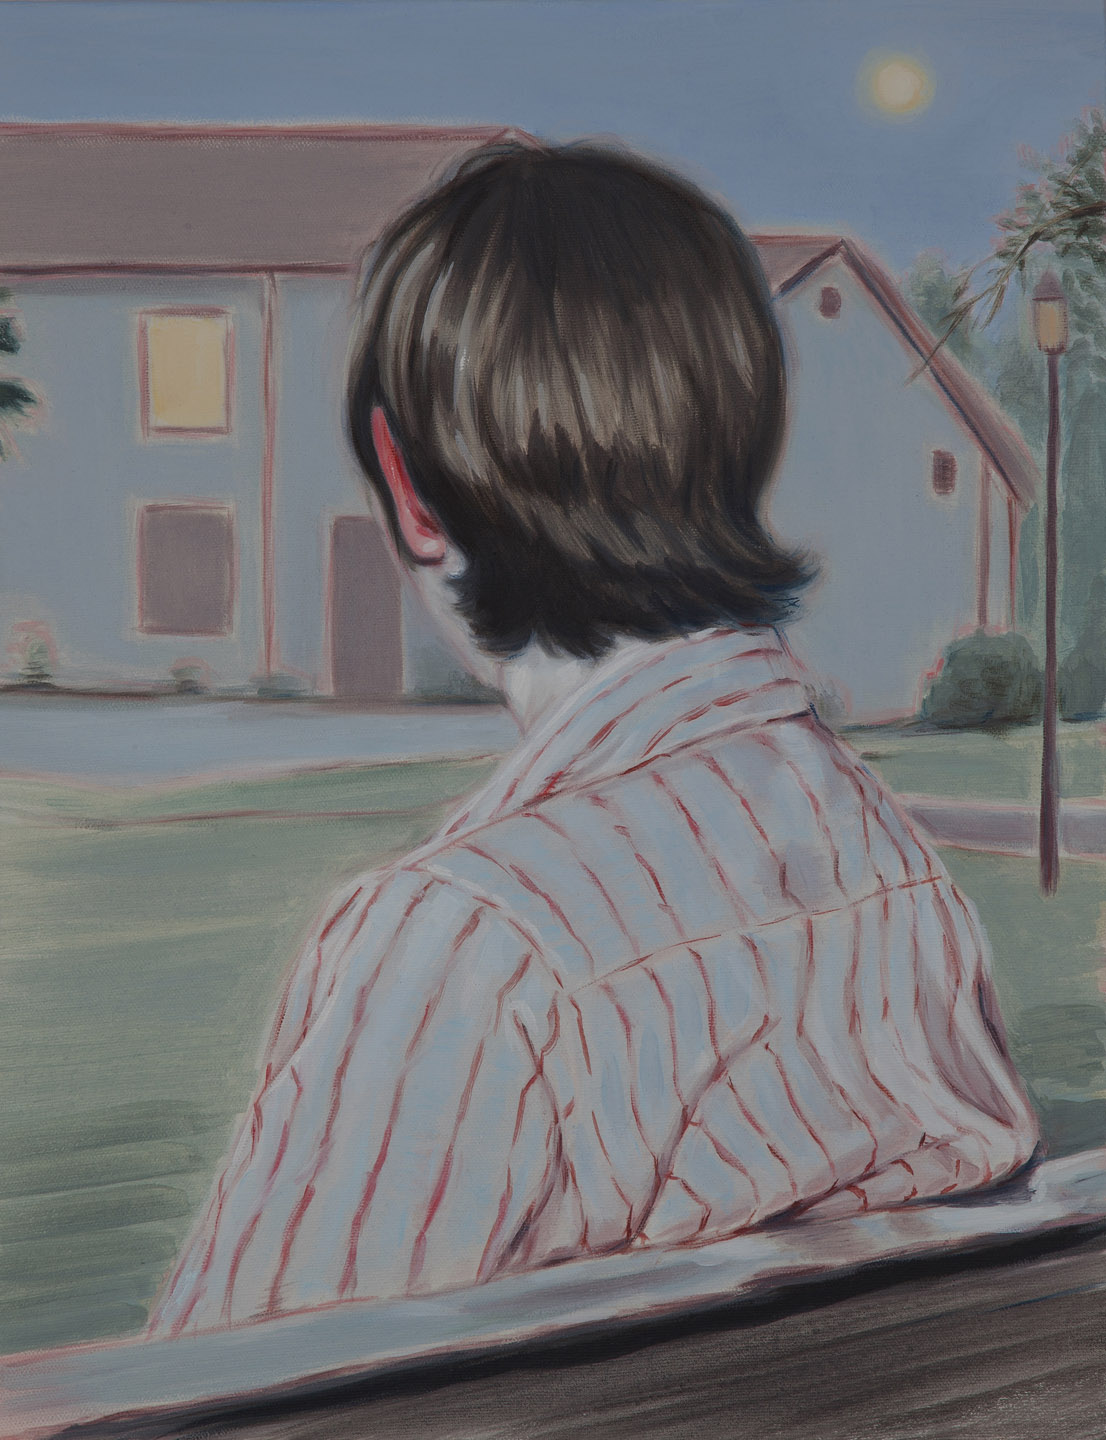 Kris Knight, Watch, 2015, oil on canvas, 18 x 14 inches.